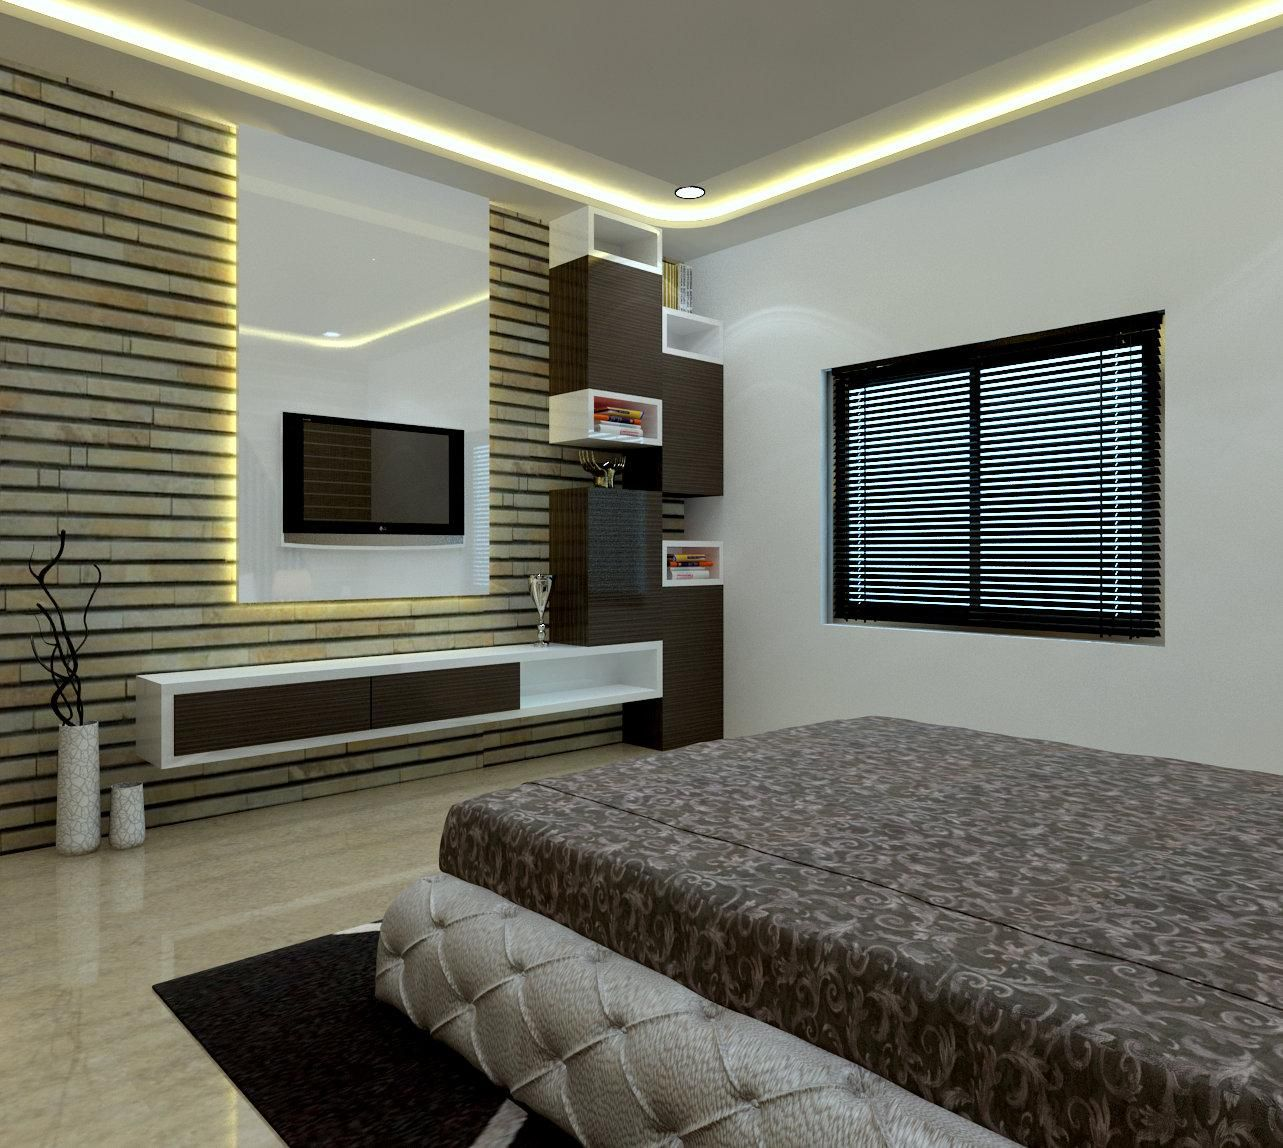 Home Interior & 3D Designs